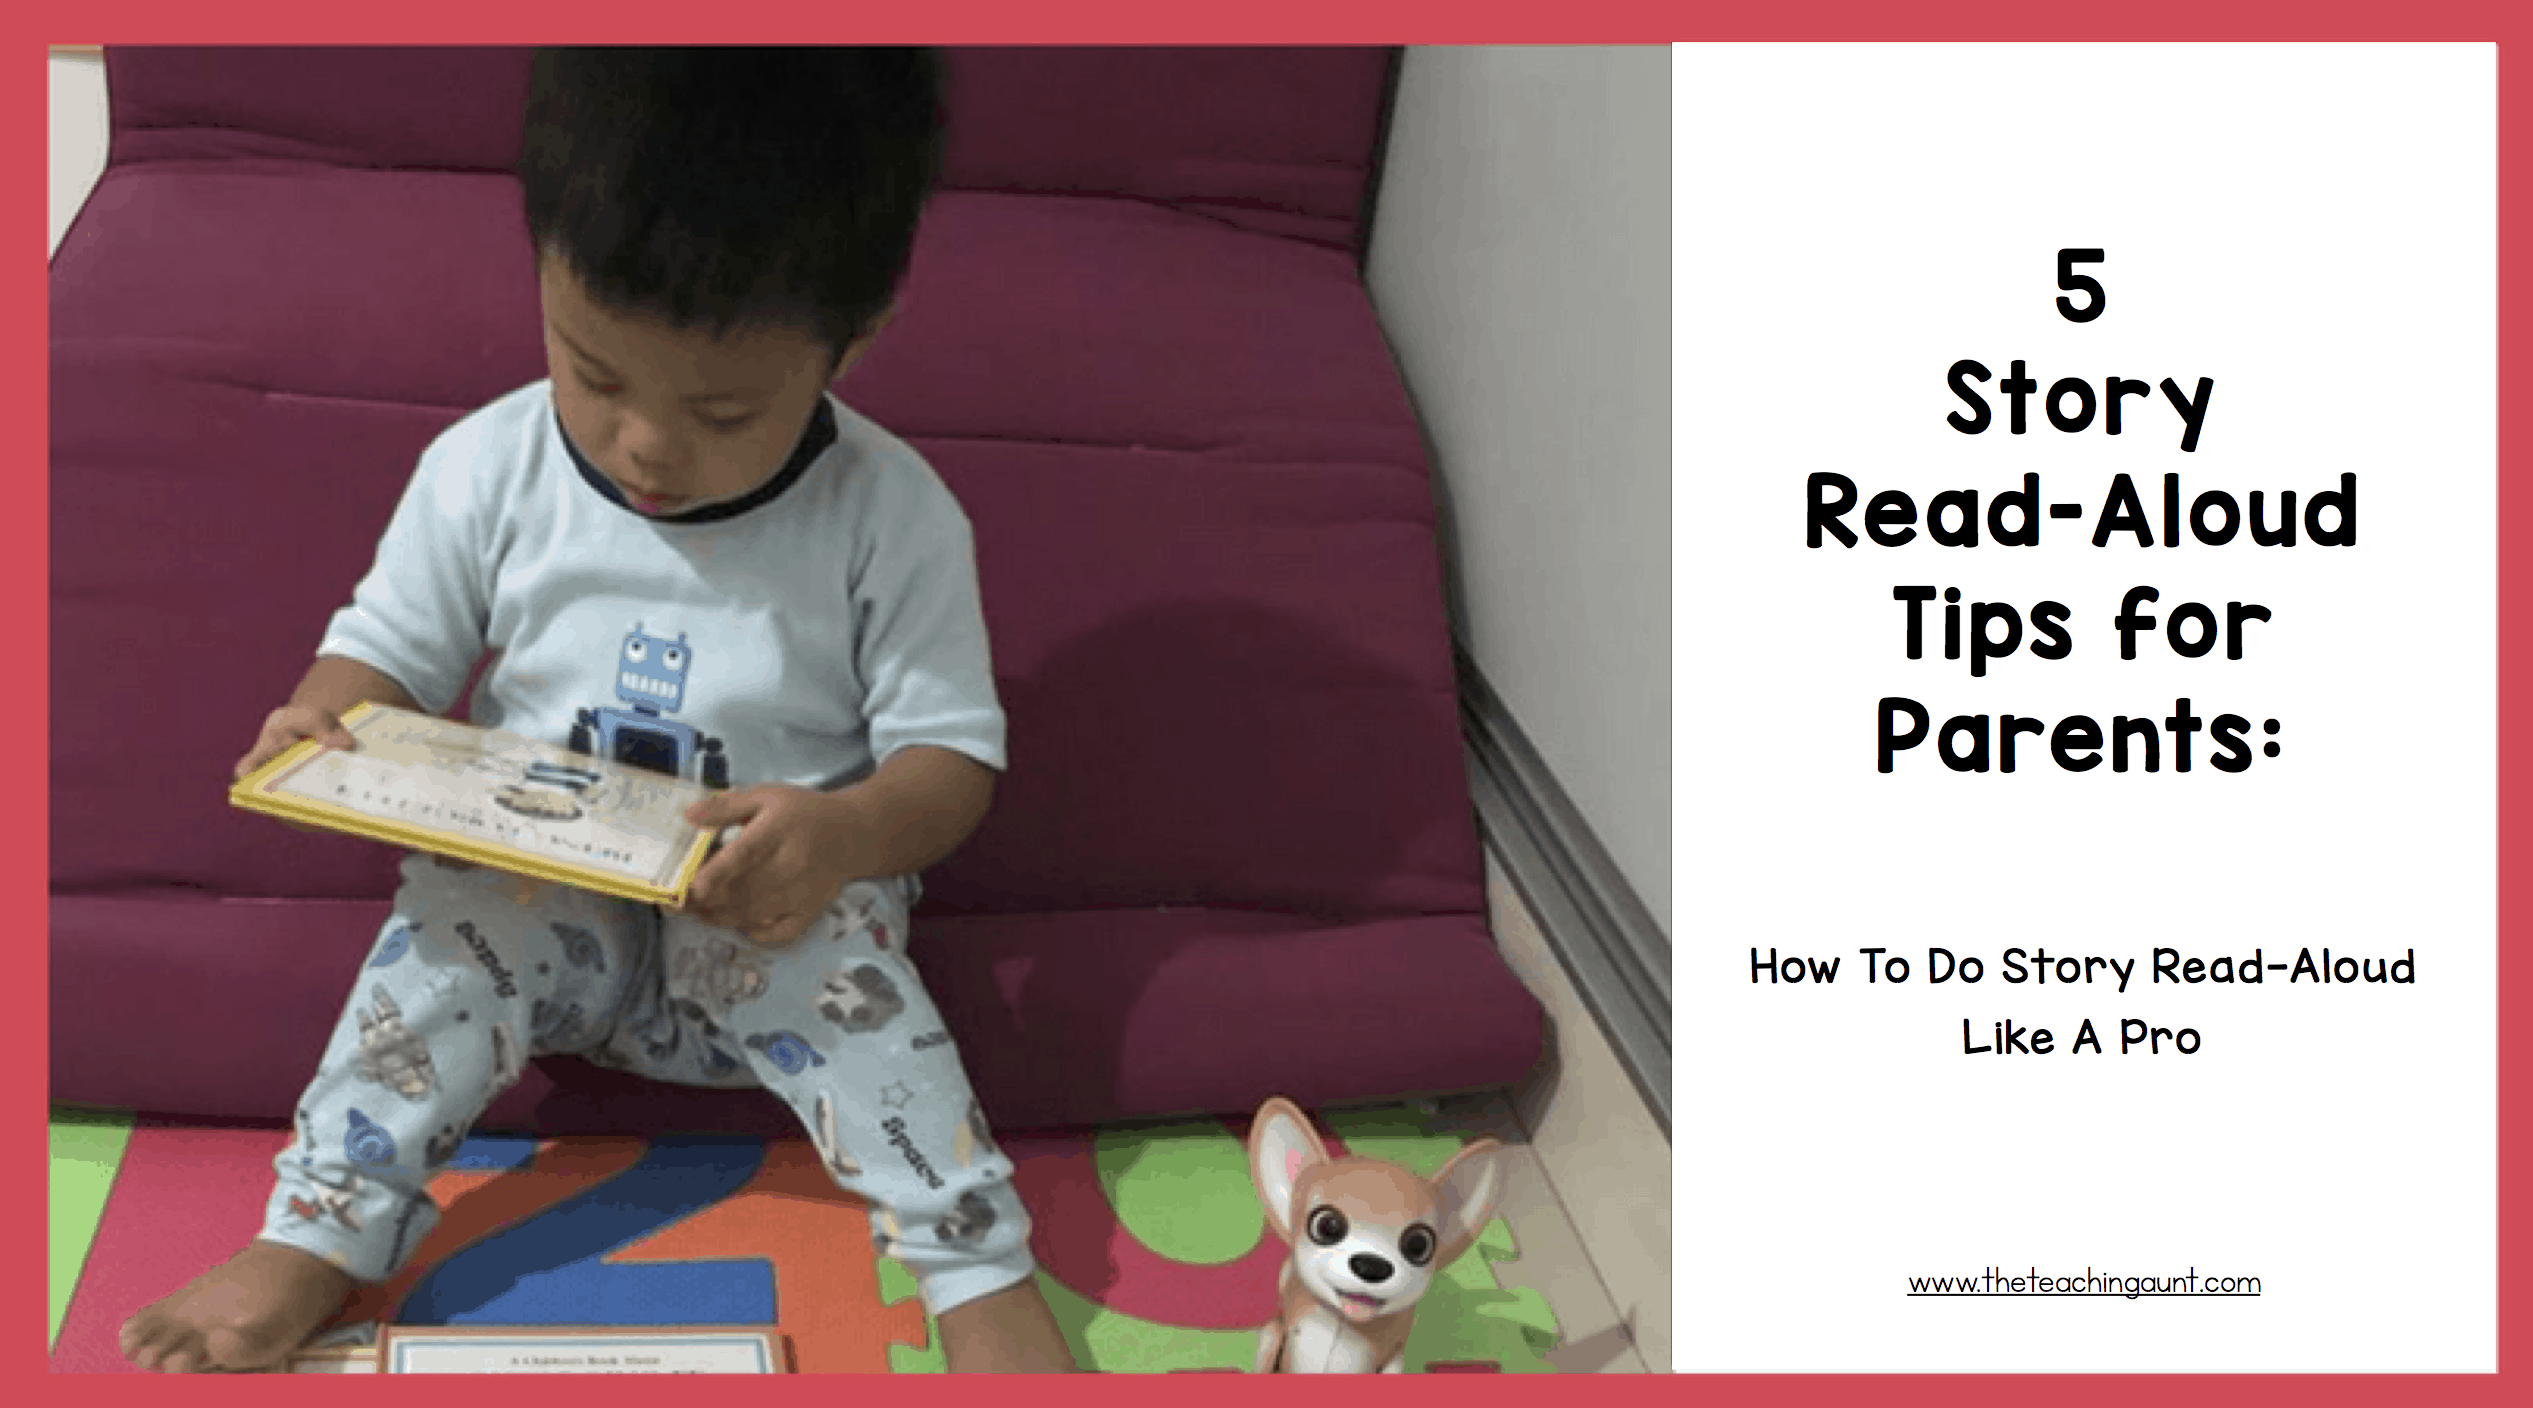 5 Story Read Aloud Tips for Parents: How To Story Read Aloud Like A Pro